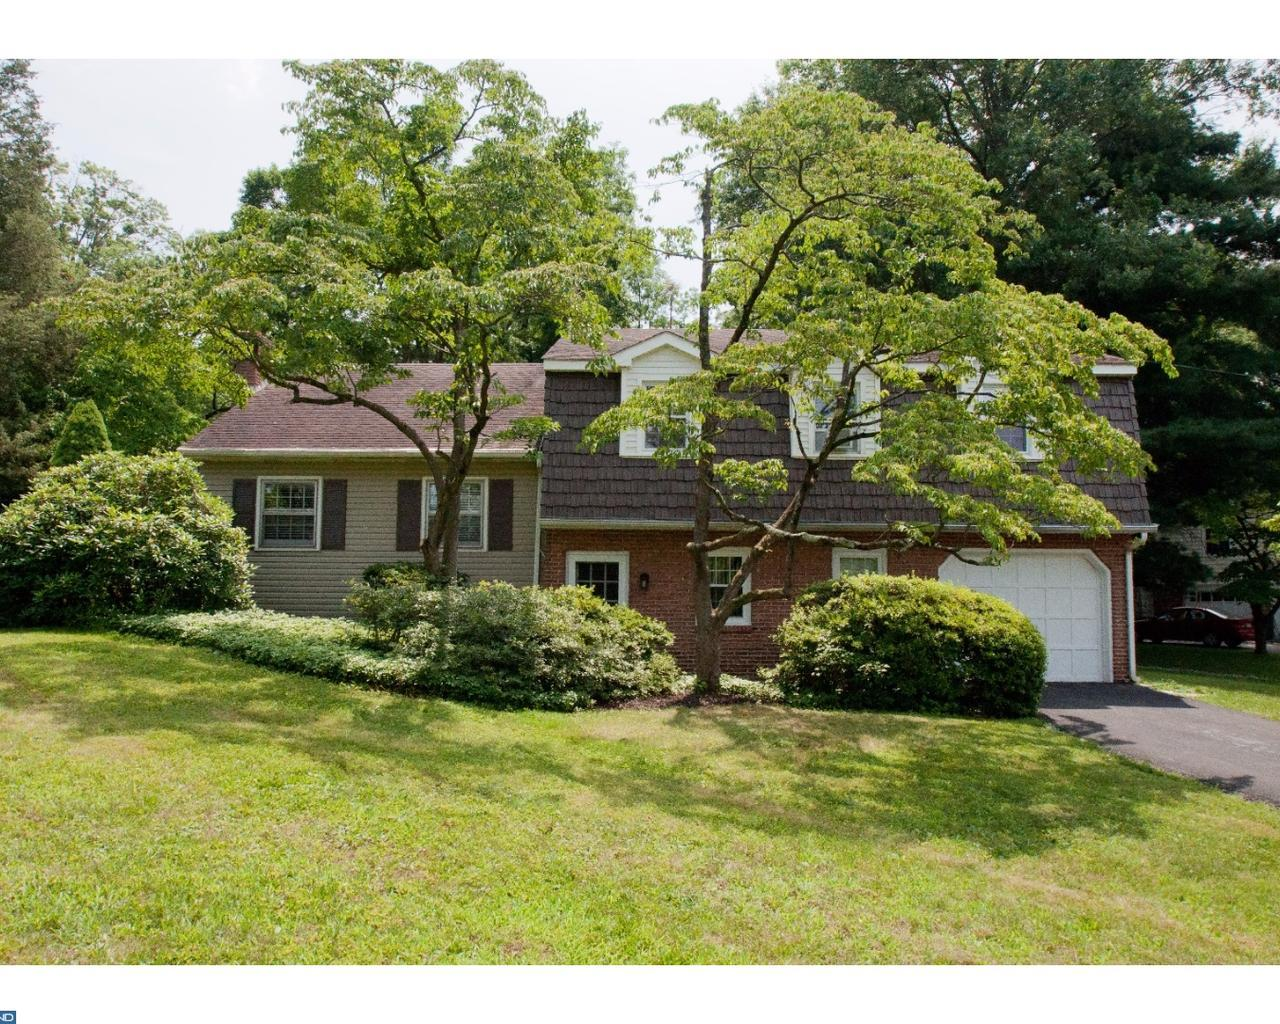 Homes In Pottstown Pa For Sale